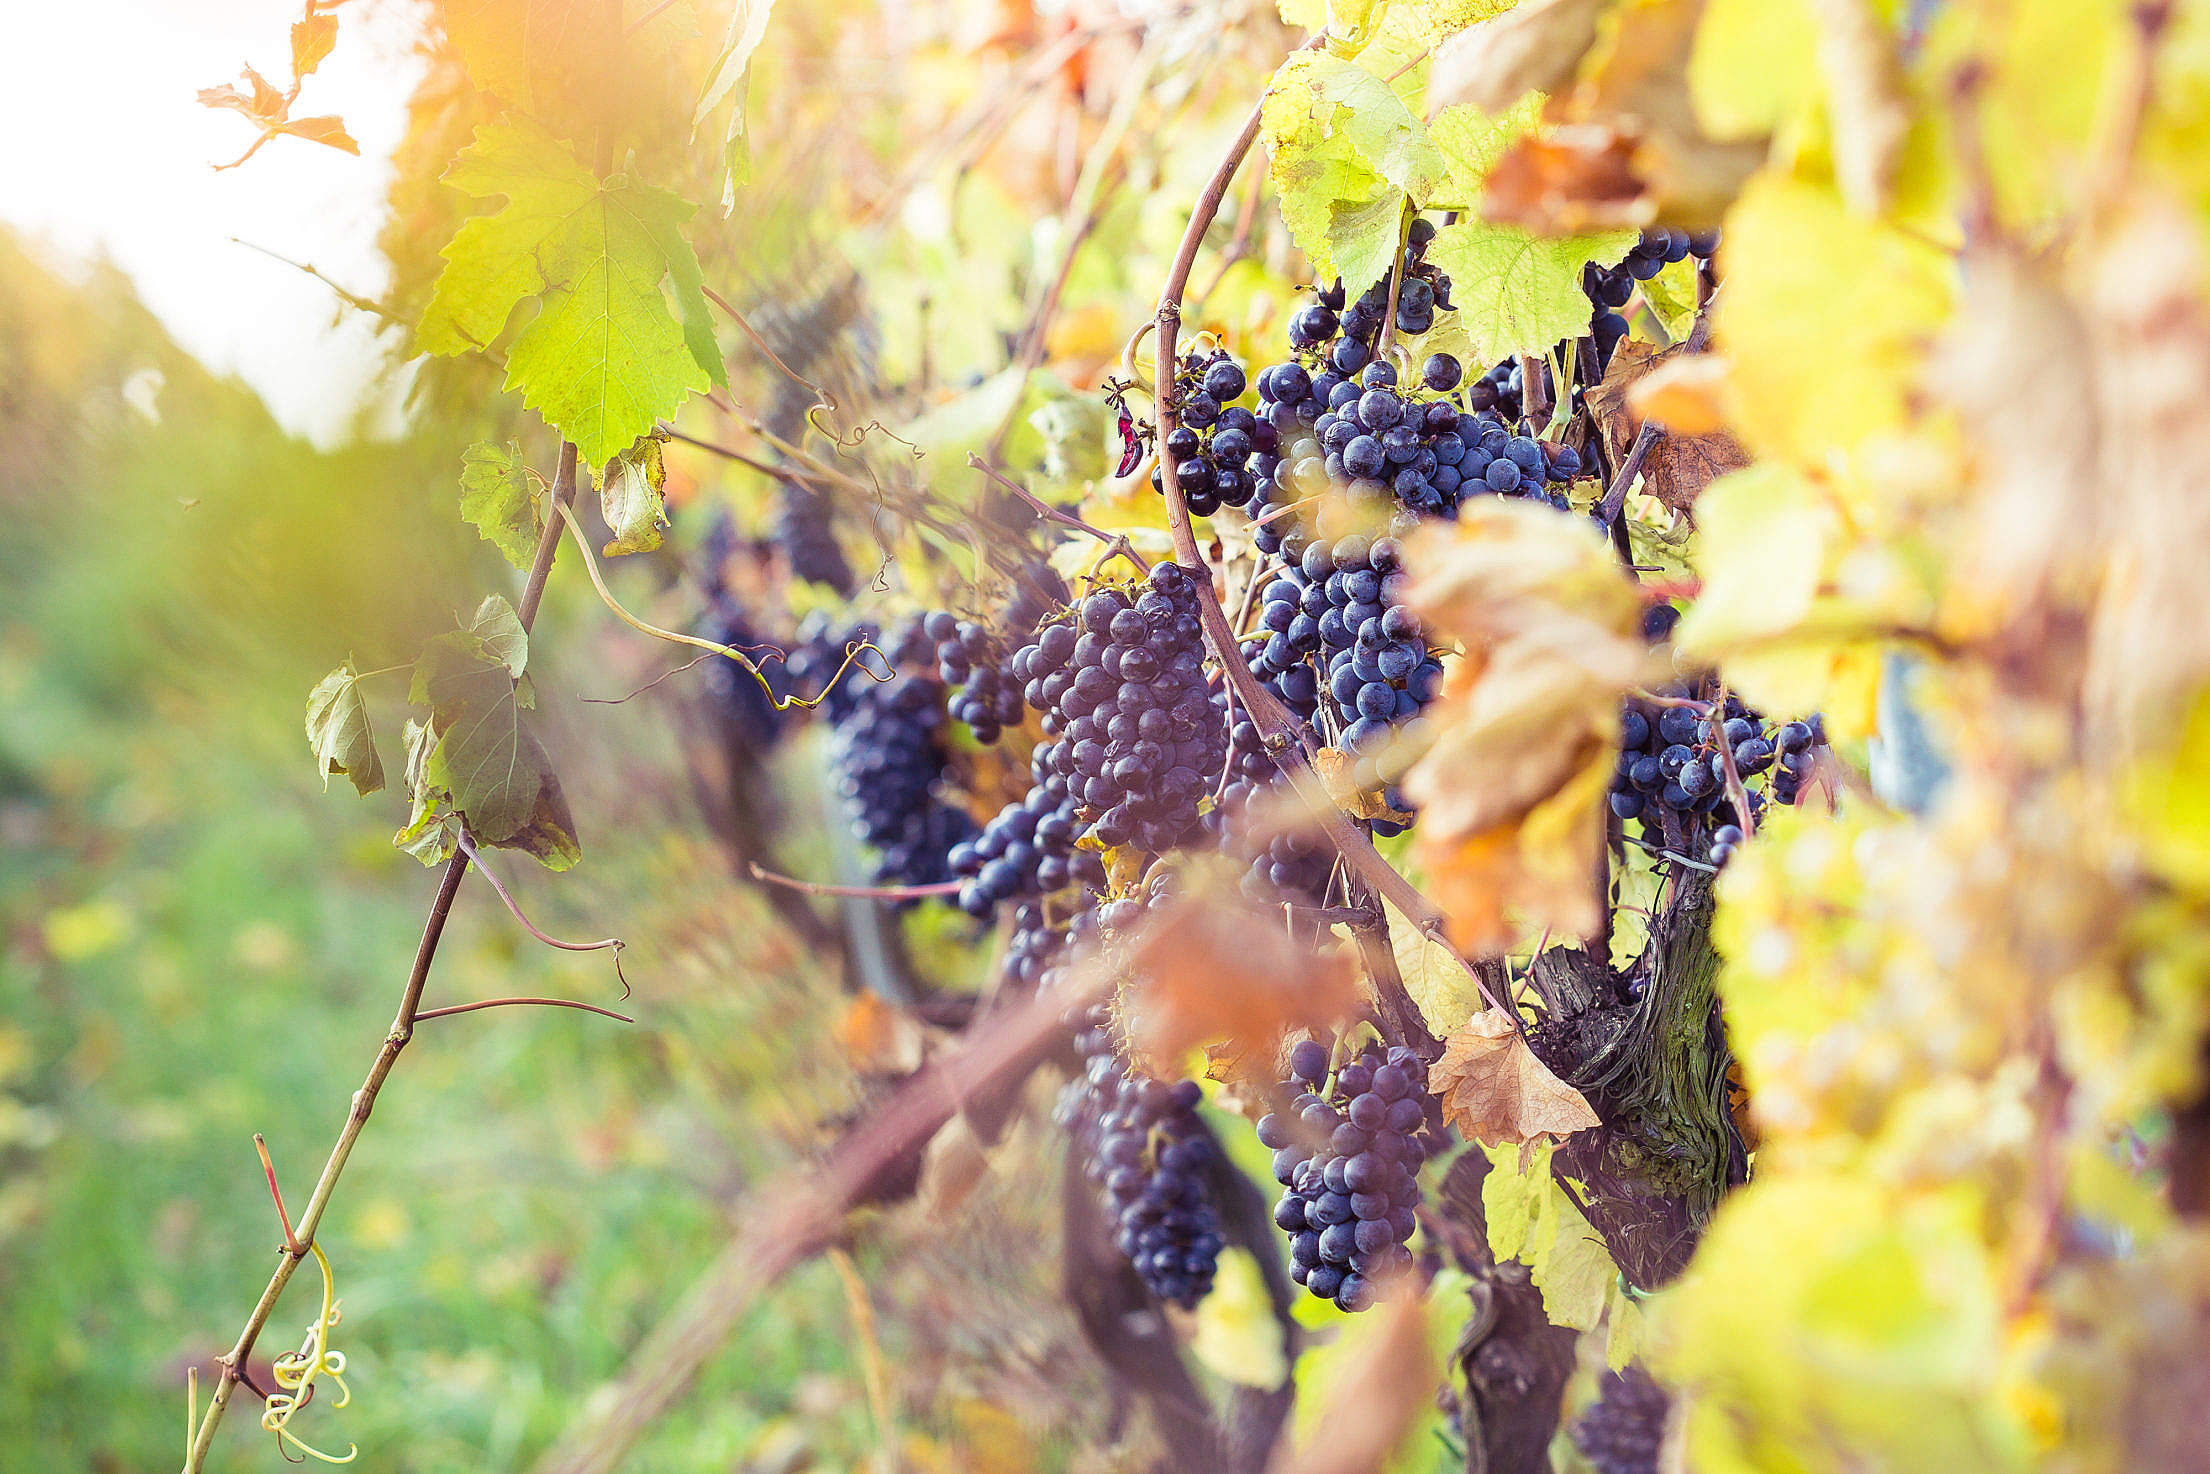 Ripe Grapes in Vineyard Free Stock Photo